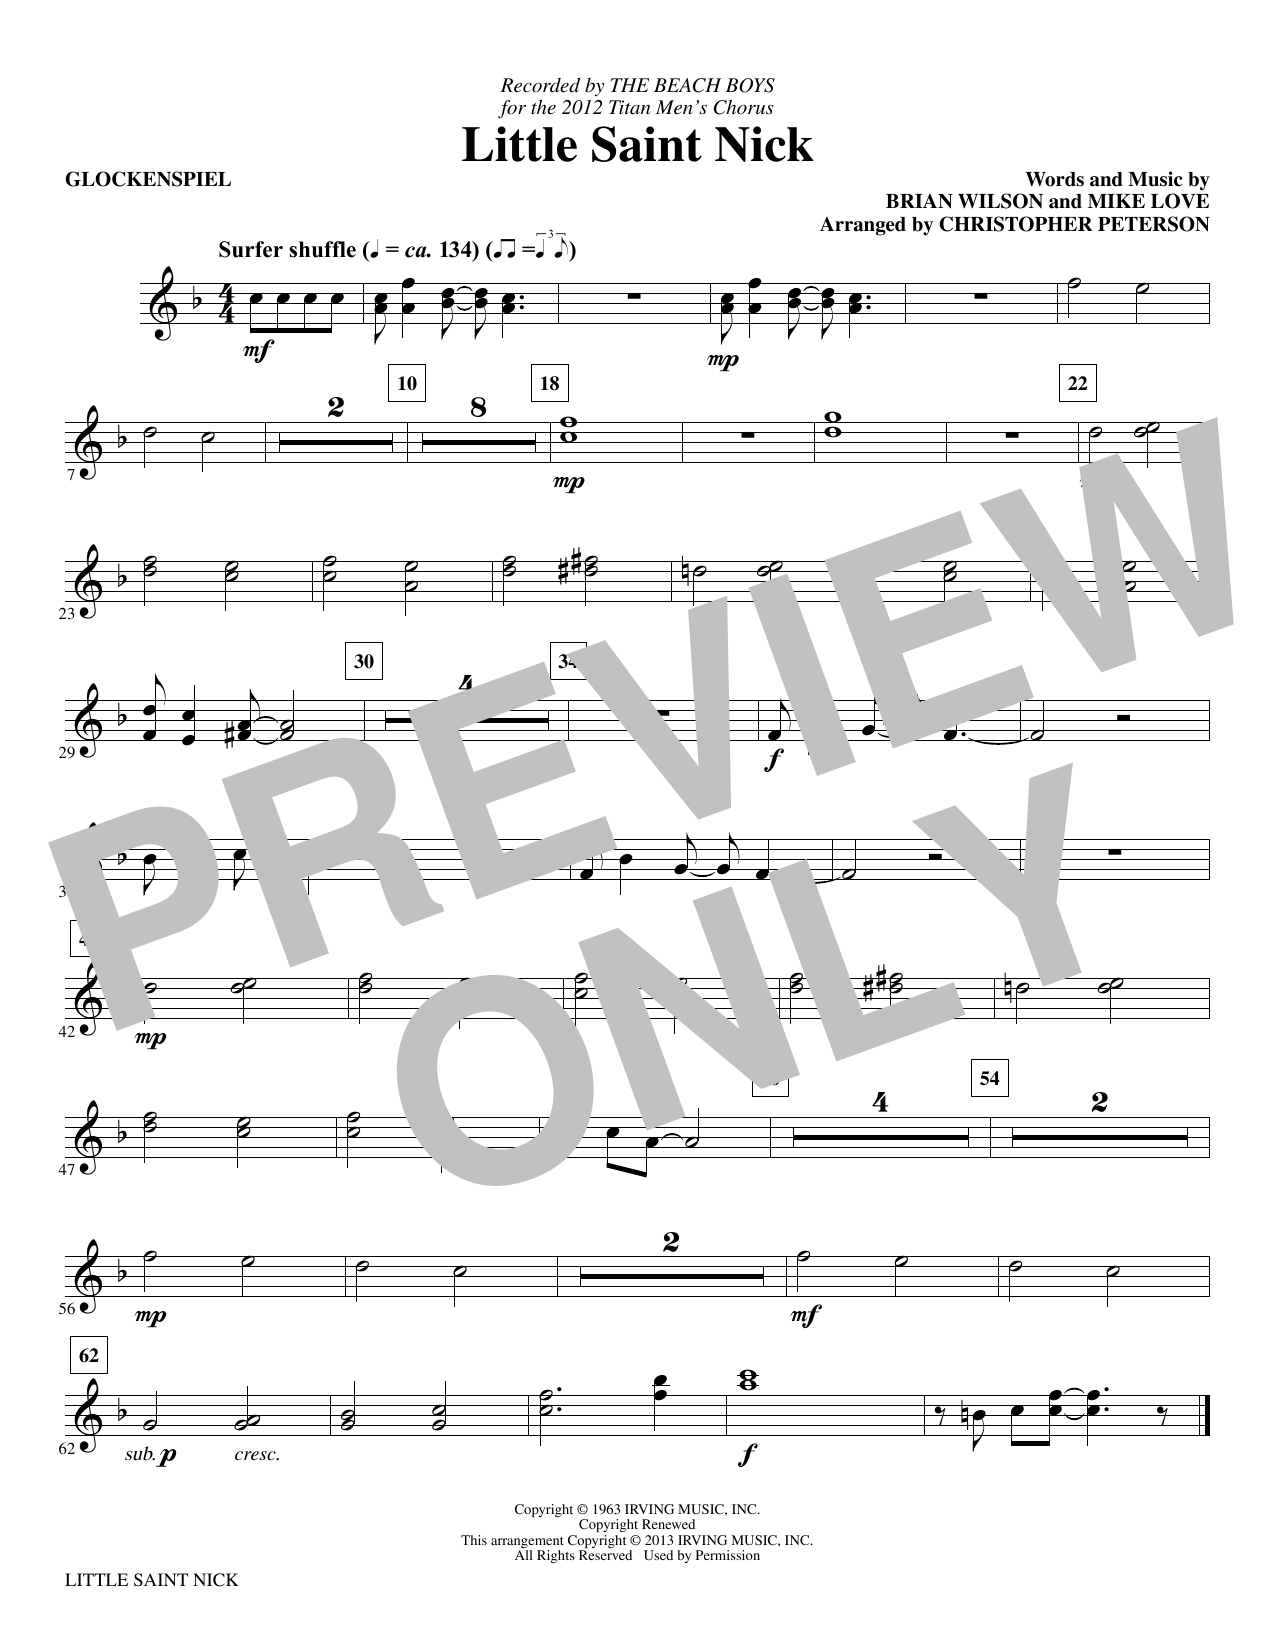 Little Saint Nick (complete set of parts) sheet music for orchestra/band by Christopher Peterson, Brian Wilson, Mike Love and The Beach Boys. Score Image Preview.